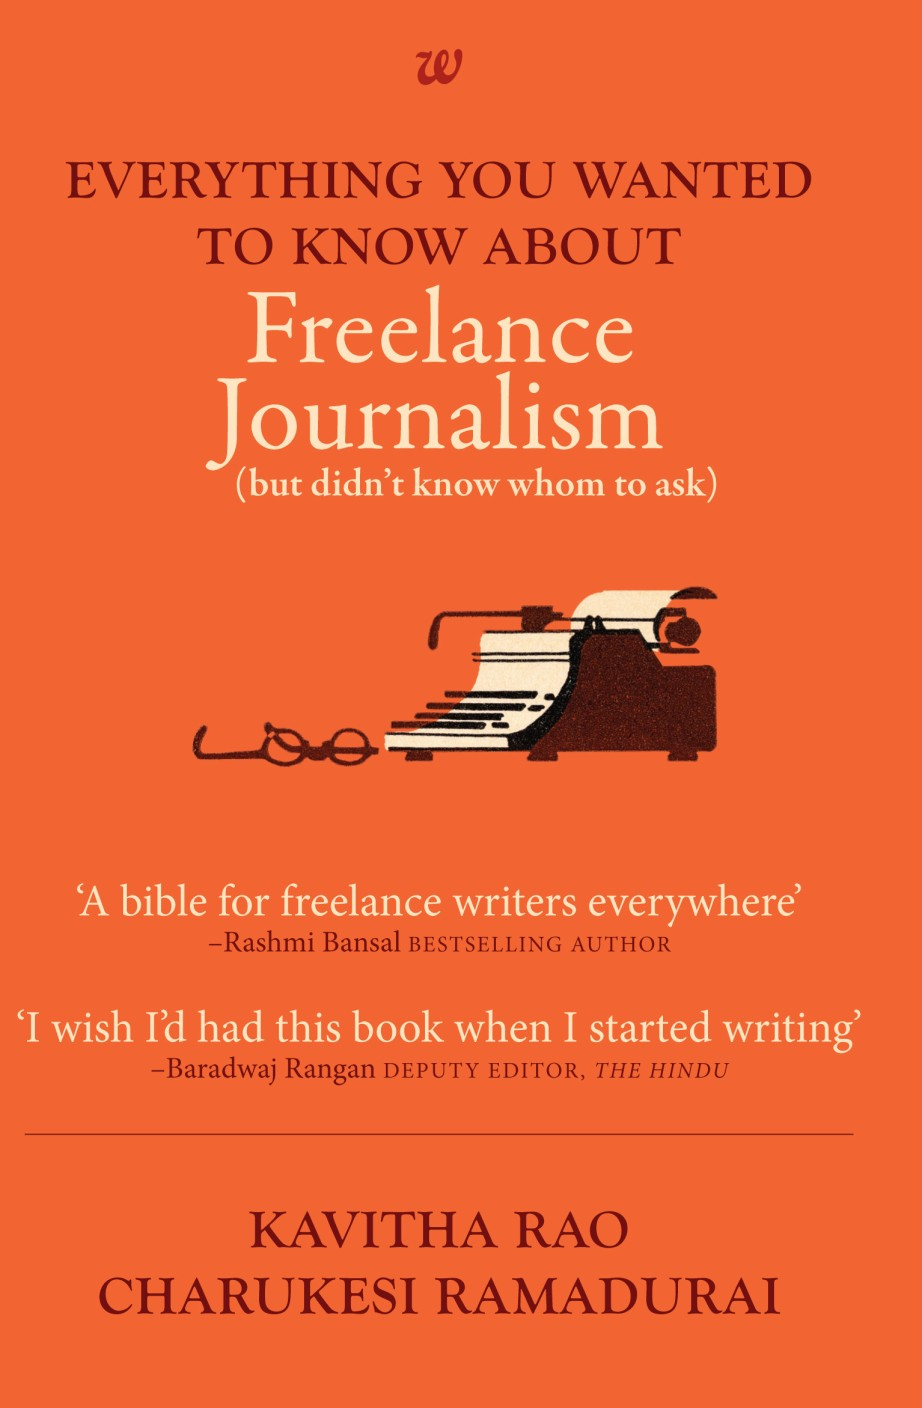 Everything You Wanted To Know About Freelance Journalism Buy How To: Ask  For A Raise